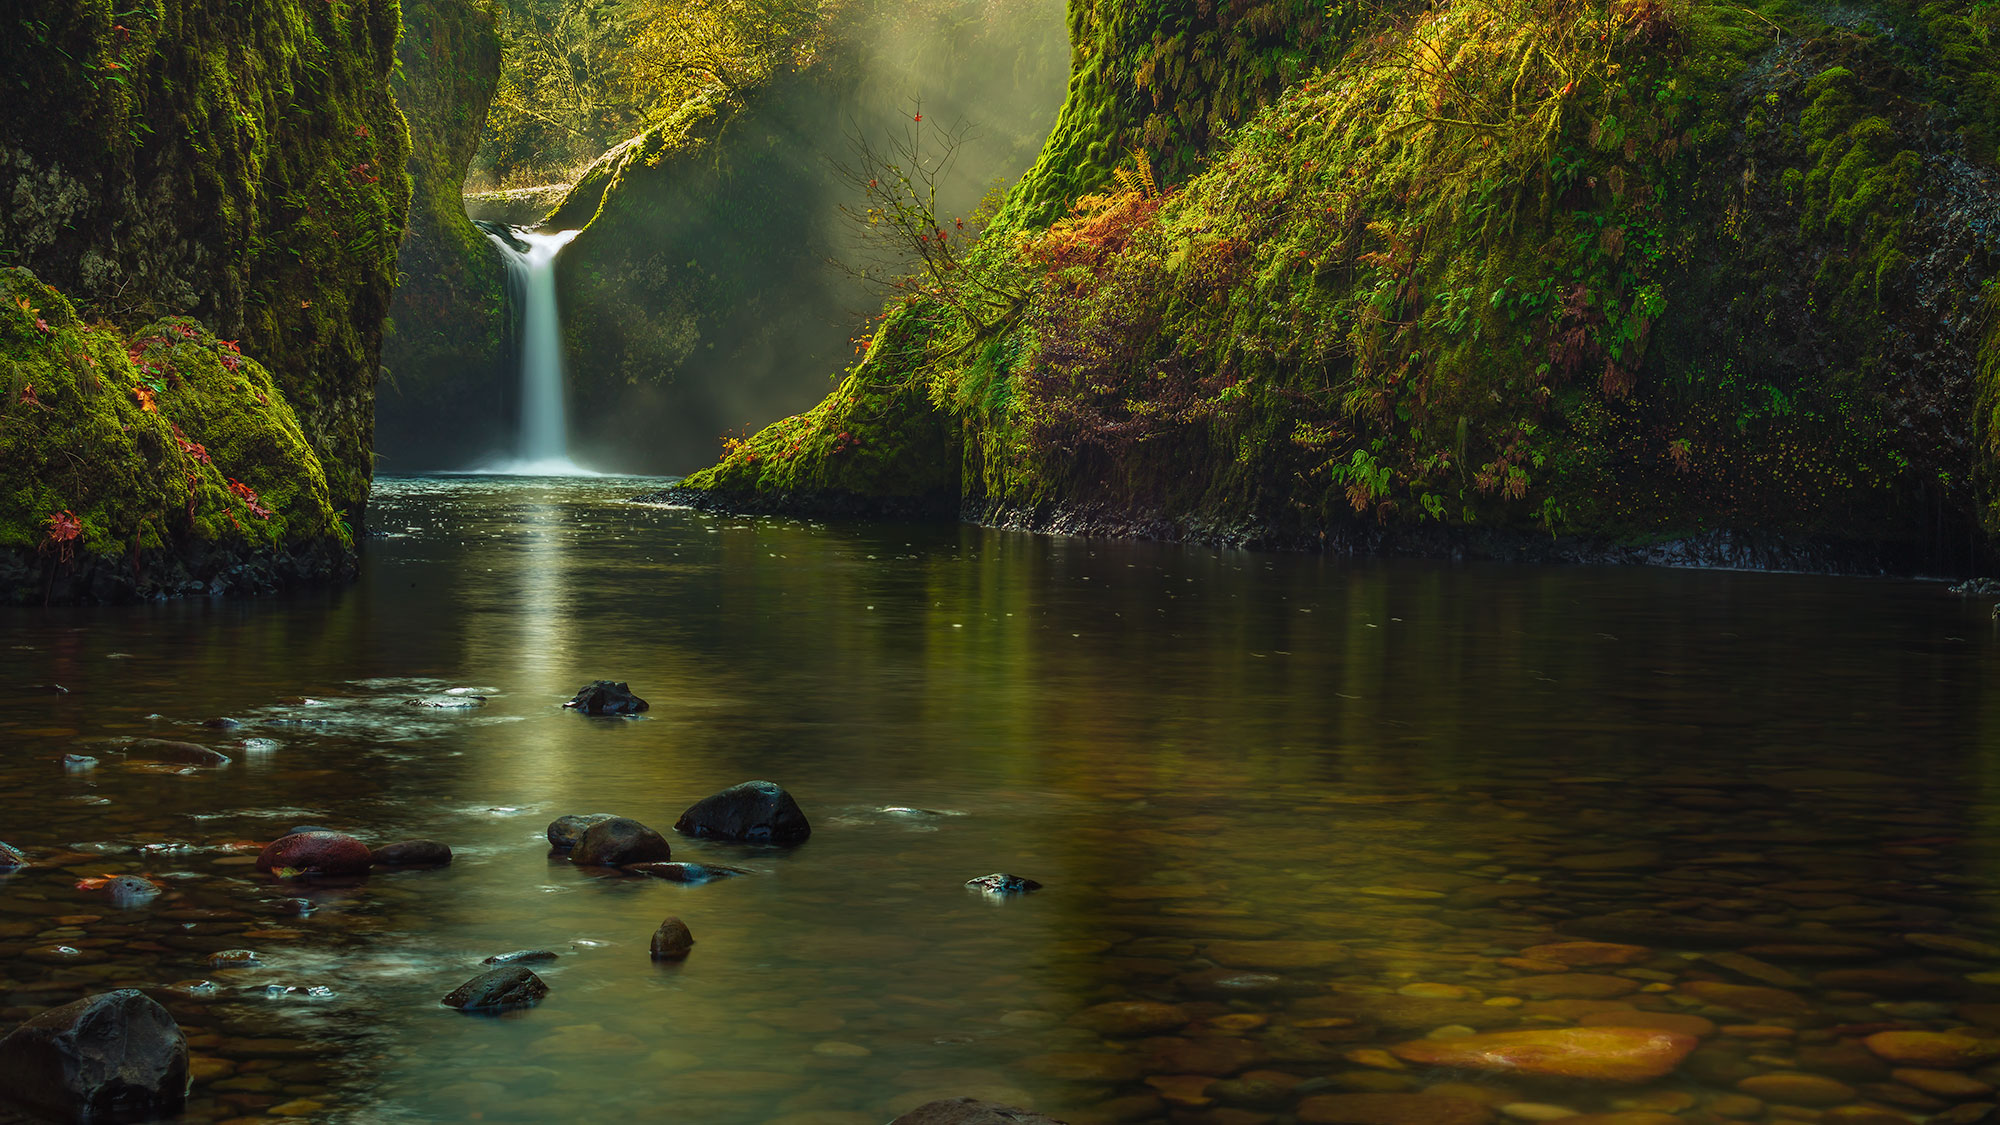 punchbowl falls - Columbia Gorge, OR